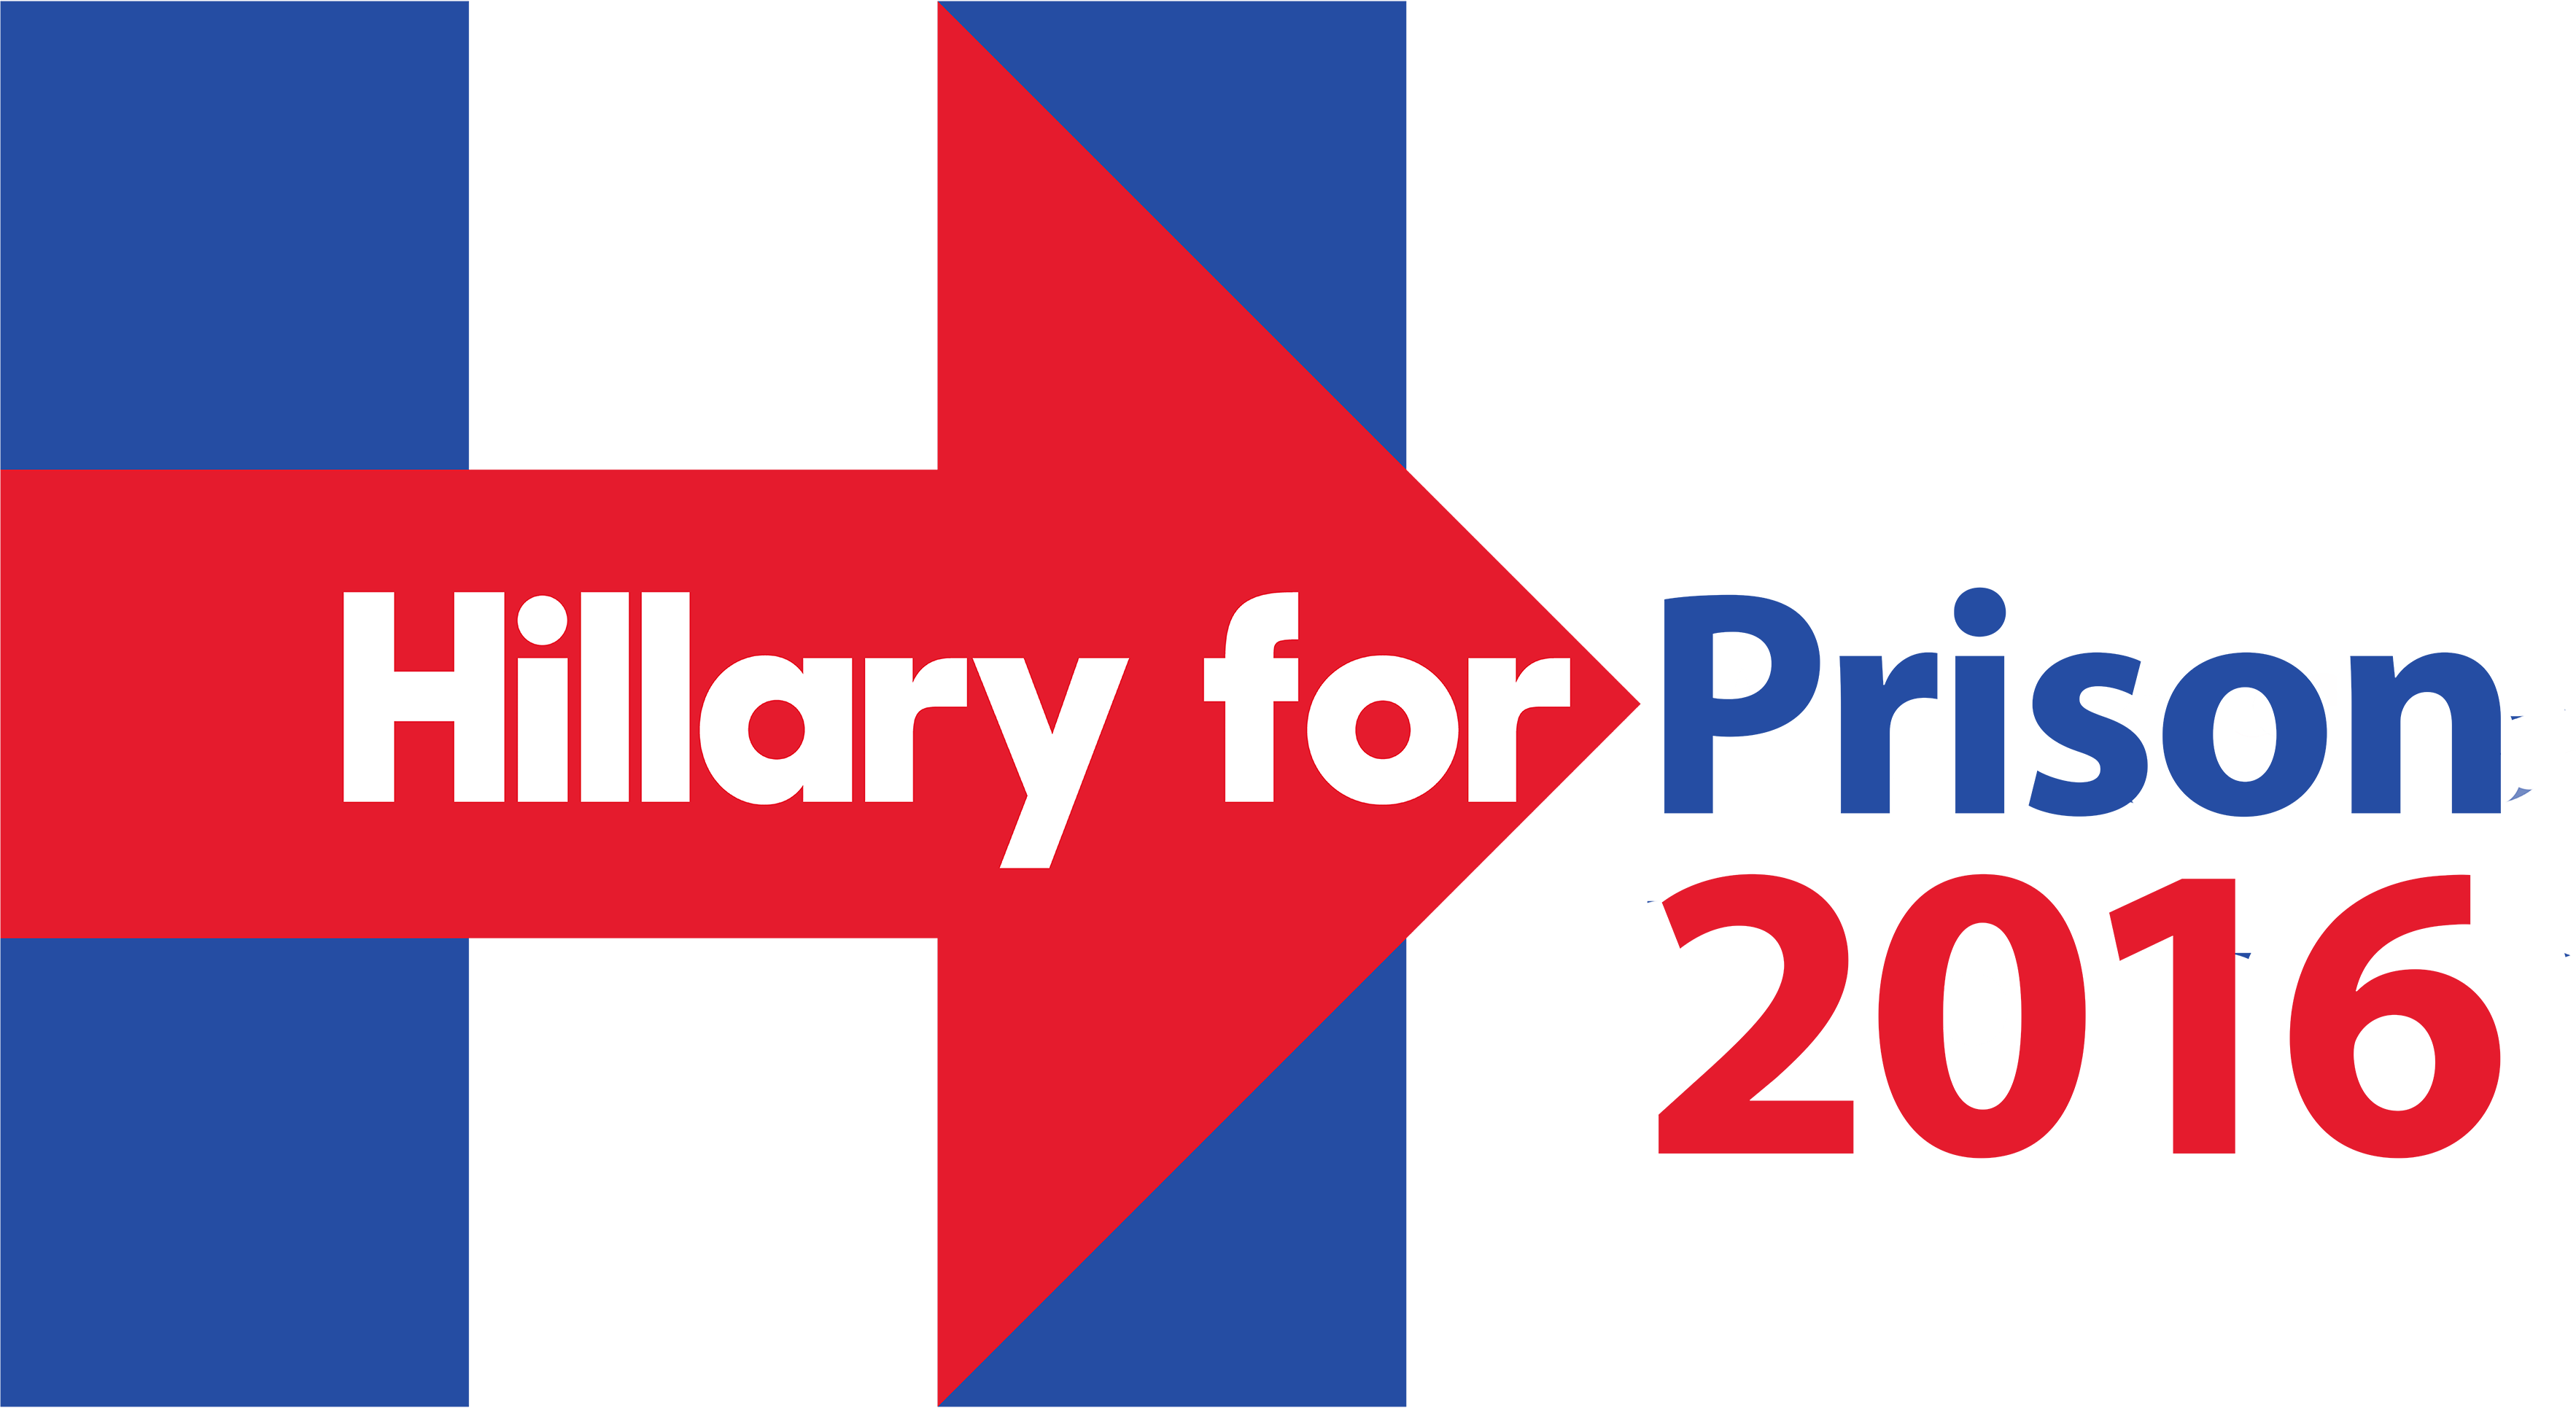 Hillary transparent logo 2016. Just not